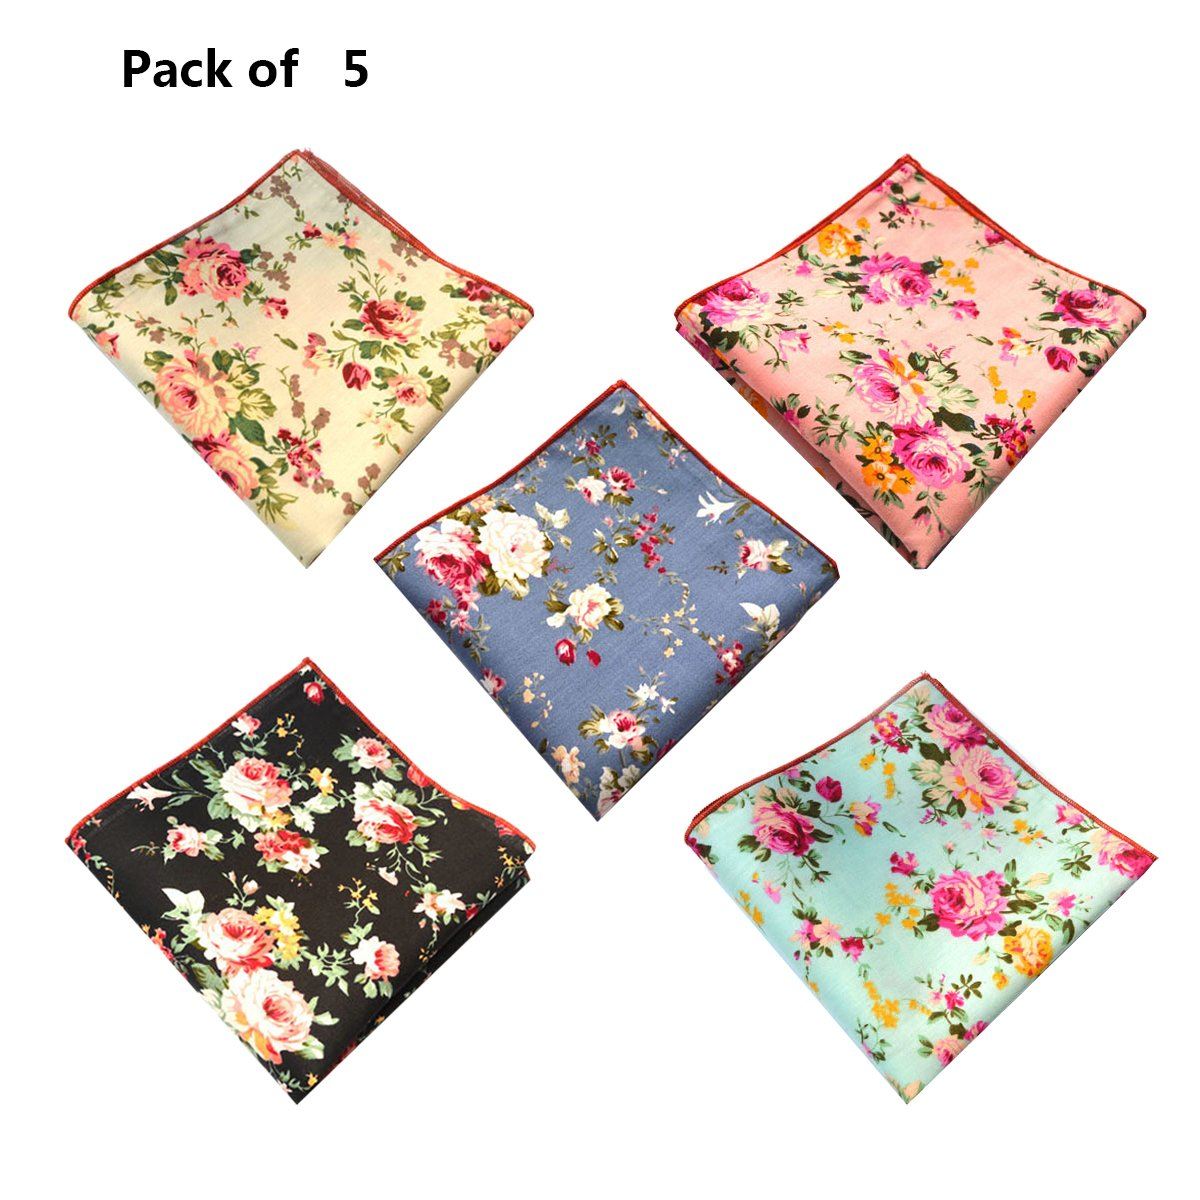 5-Pk of Floral Cotton Pocket Square Set